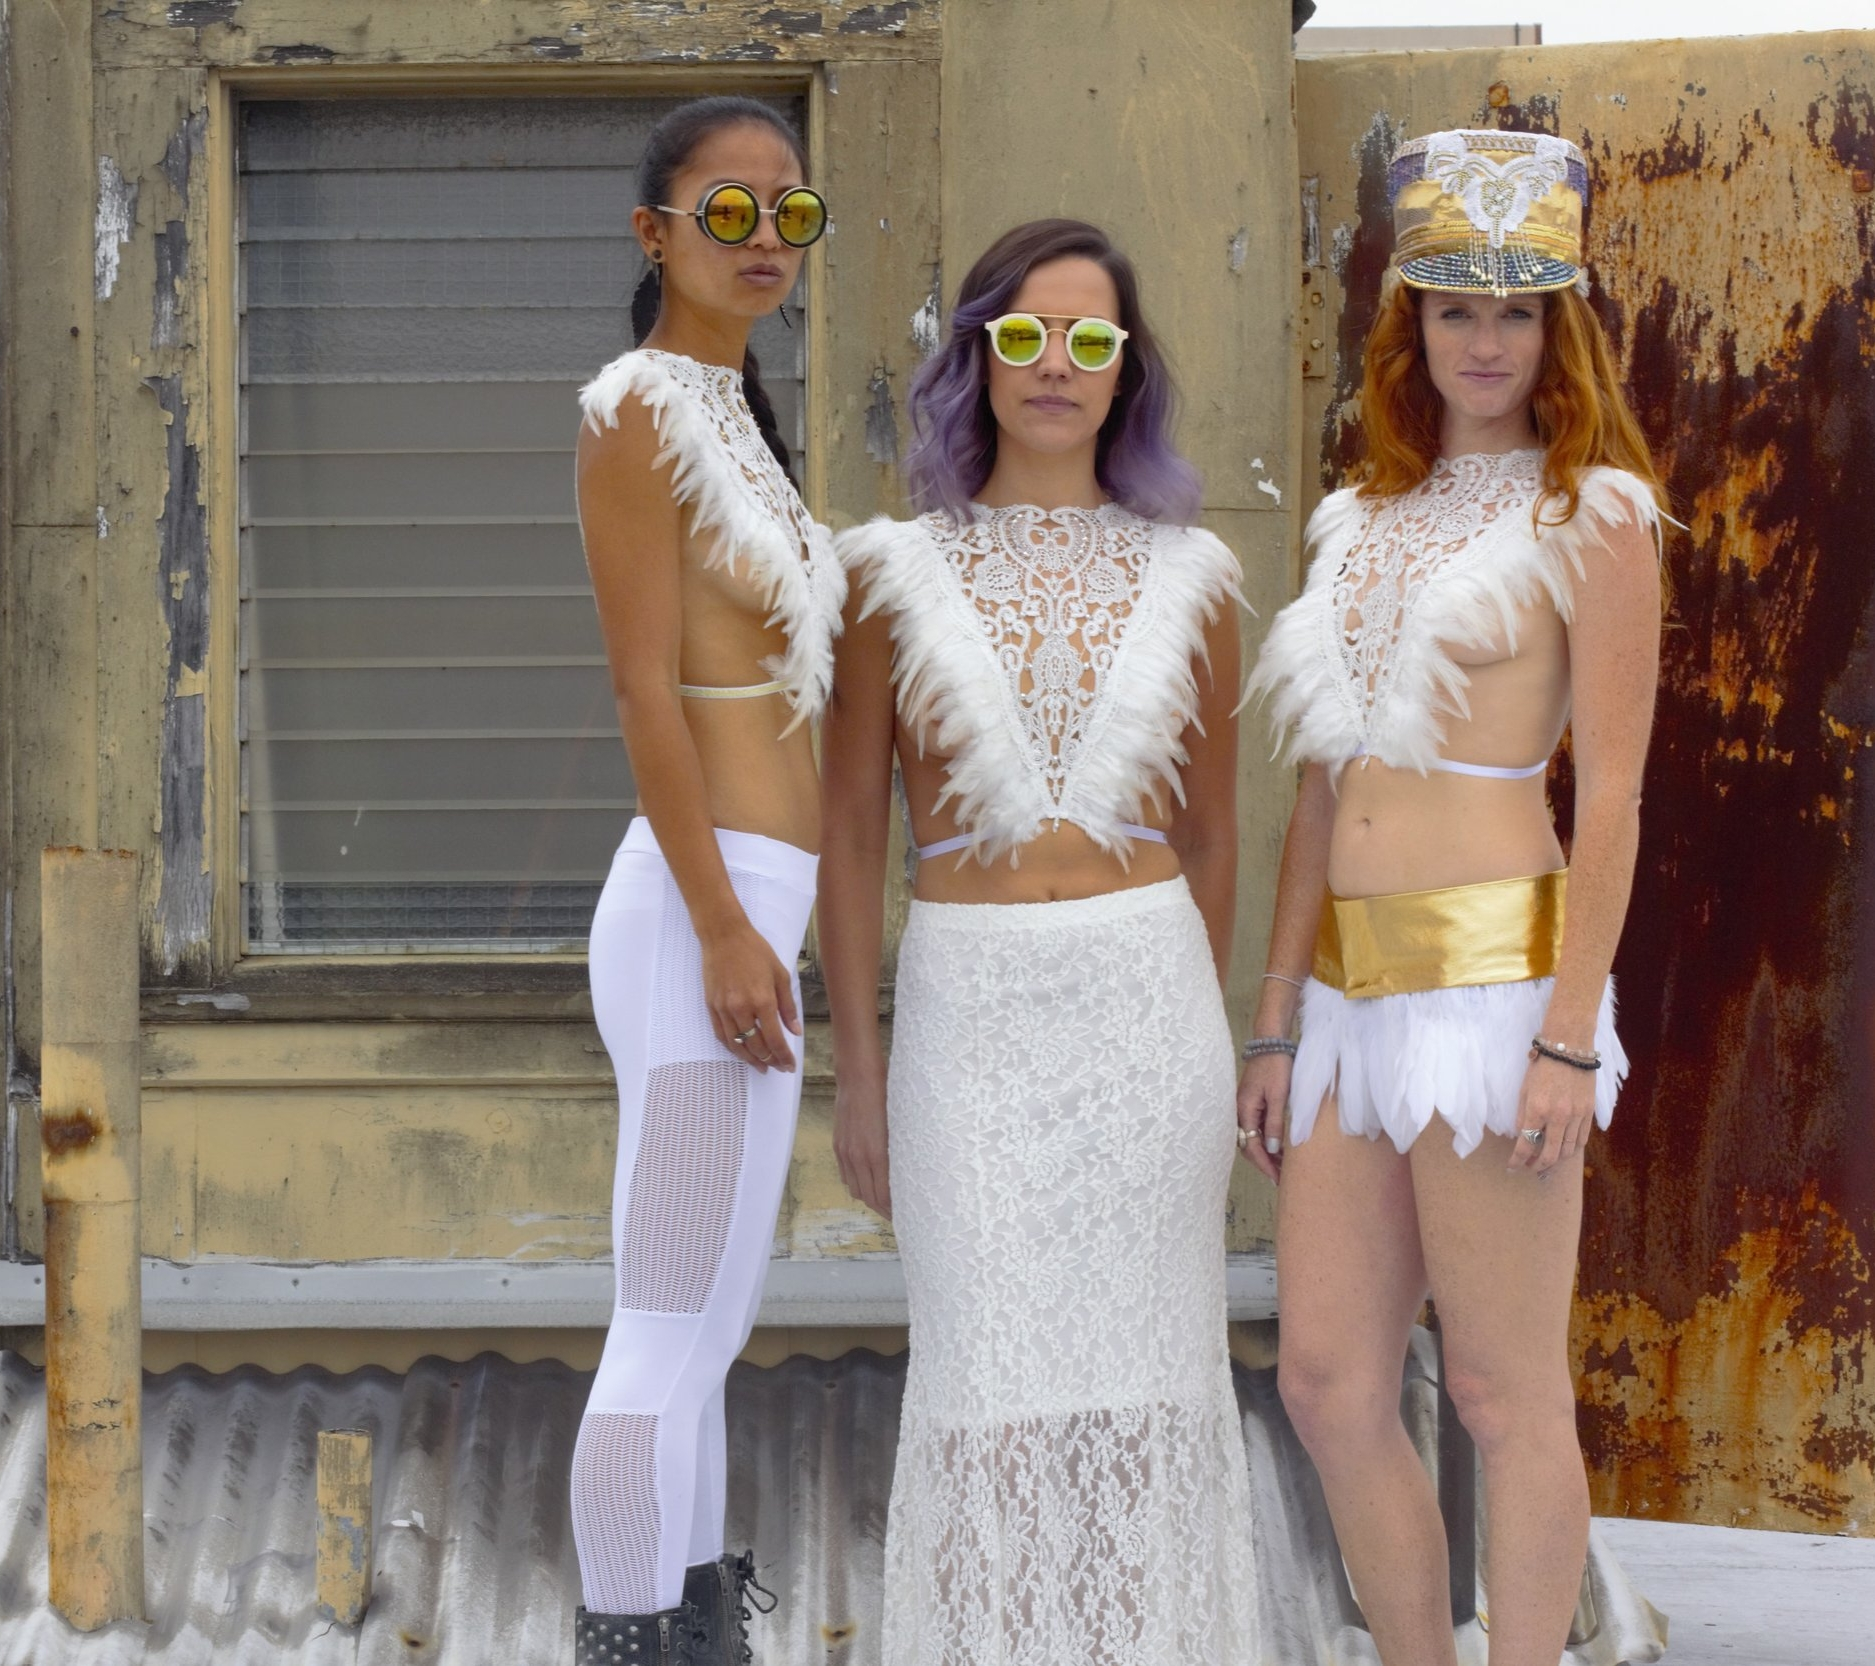 Womens all white boho chic Feather tops and feather skirts, festival outfits perfect for burning man